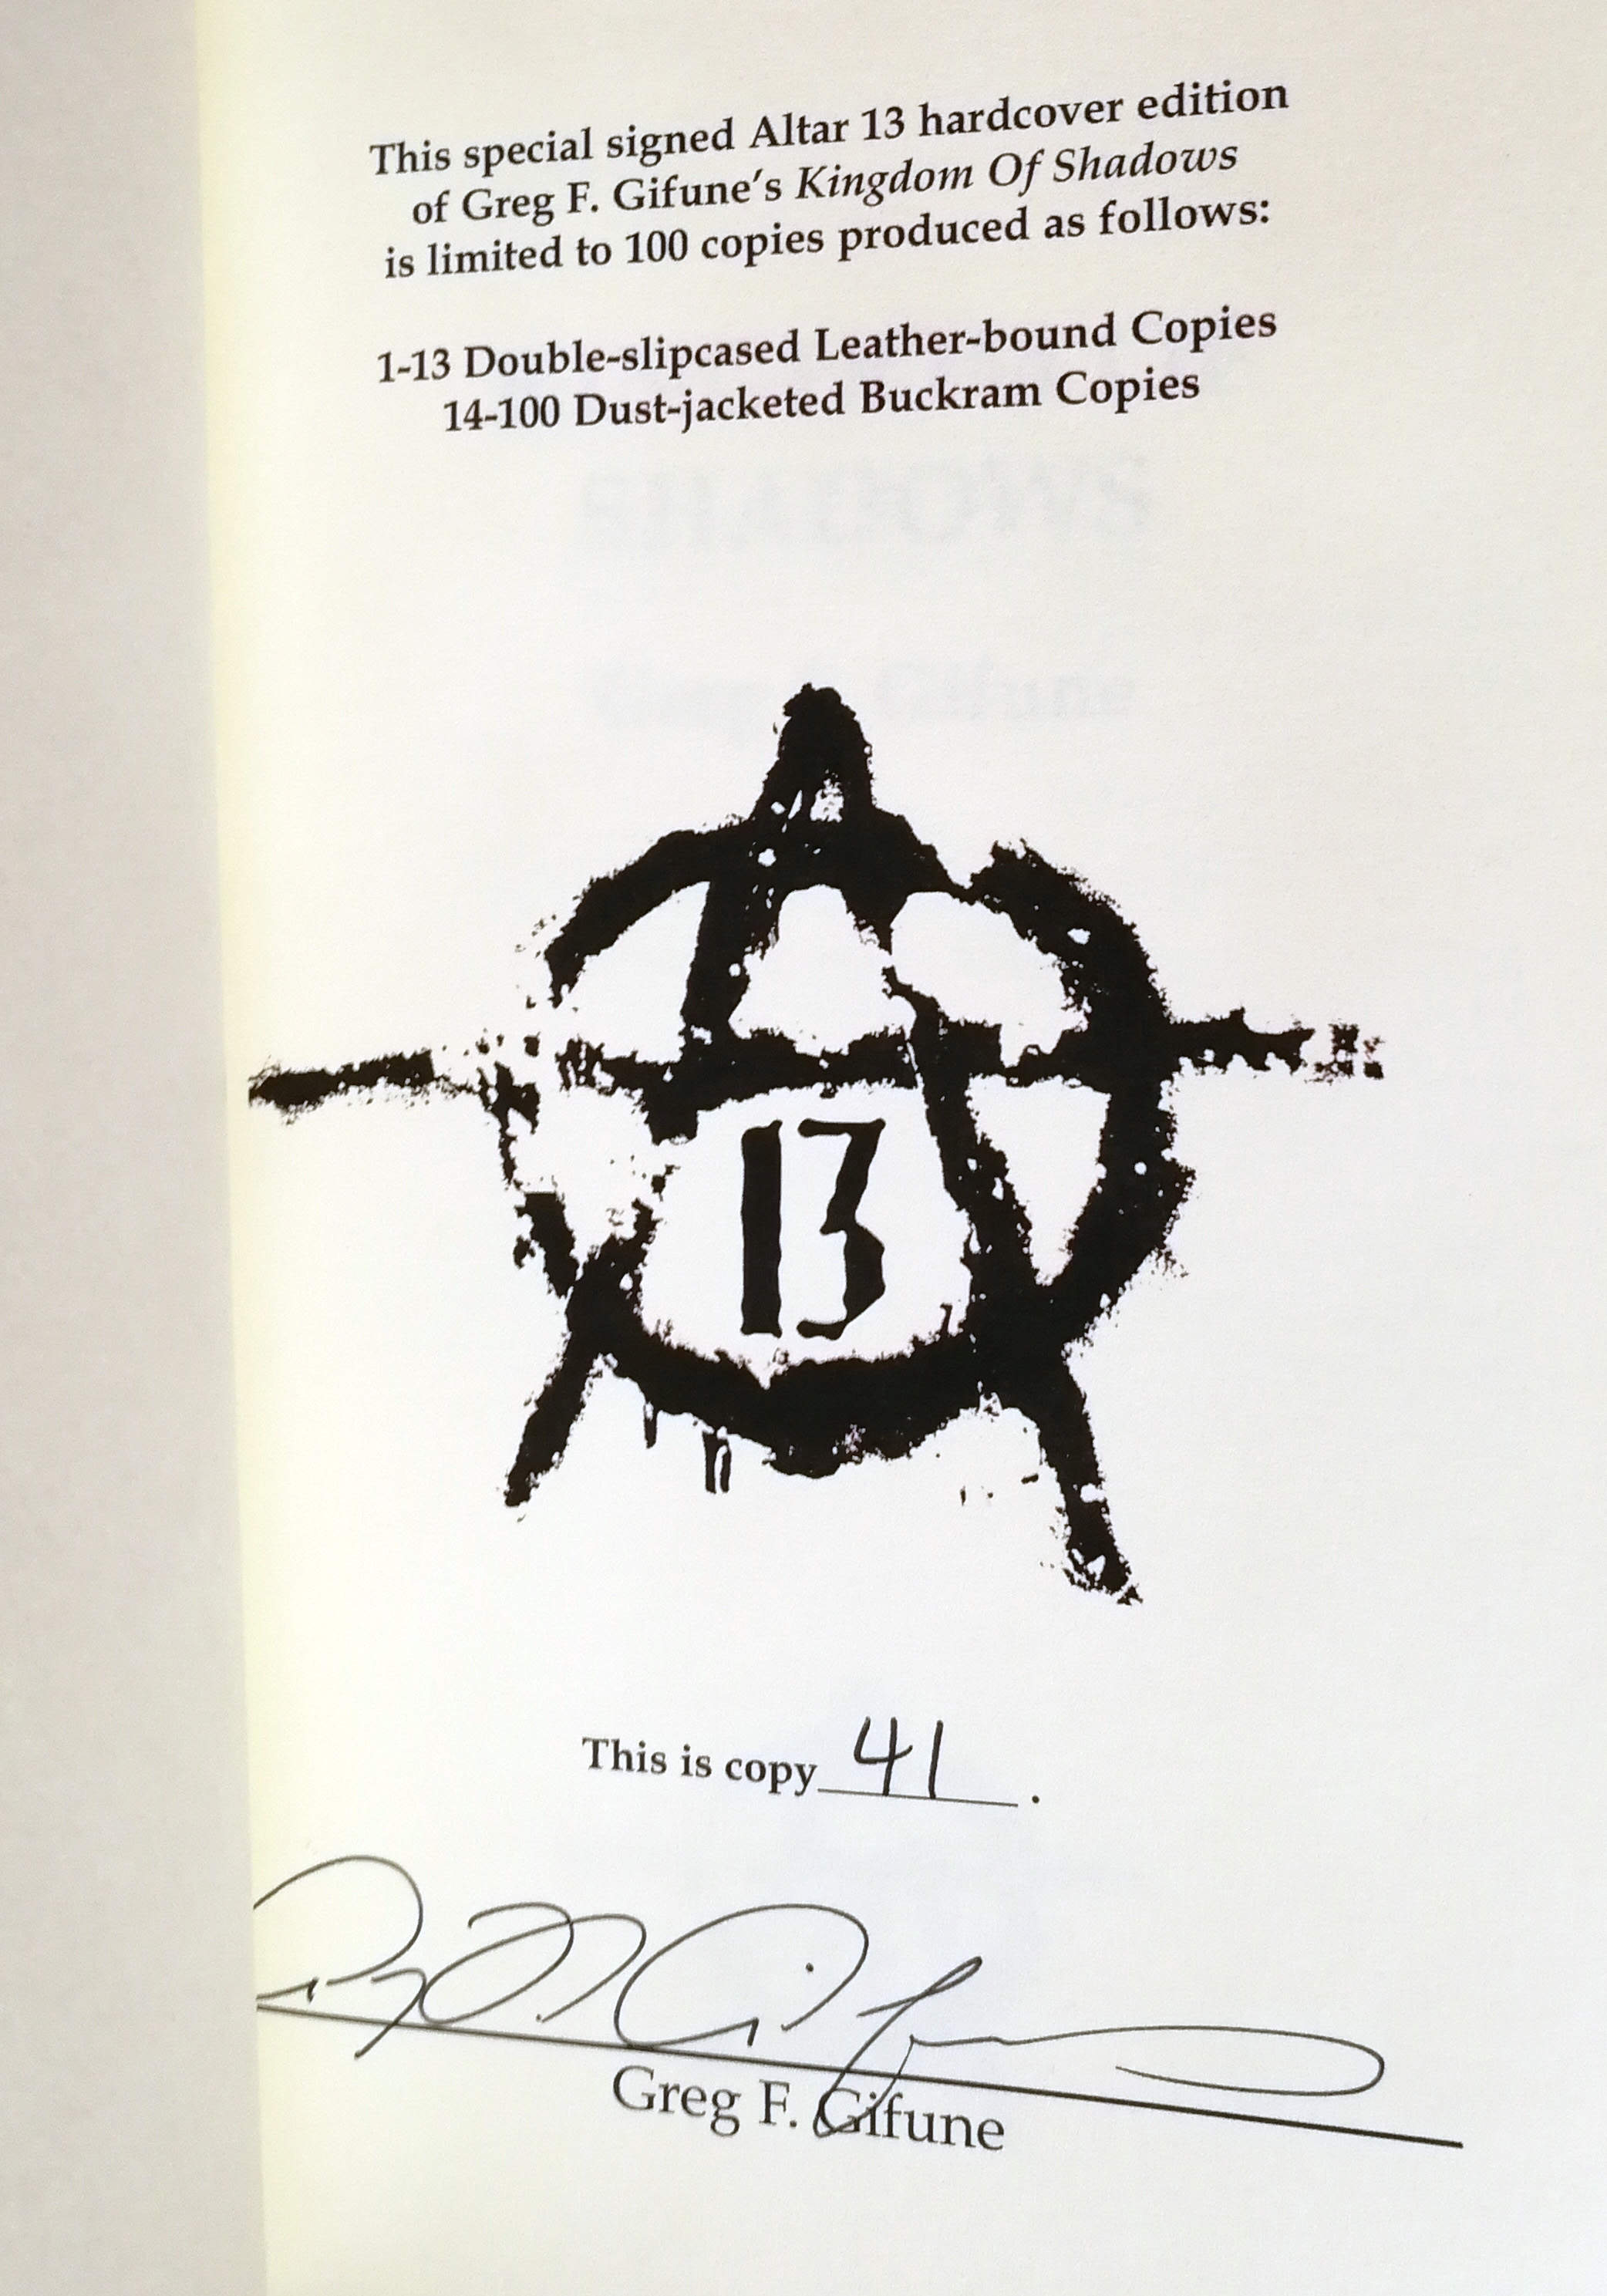 Kingdom Of Shadows Signed Limited Edition